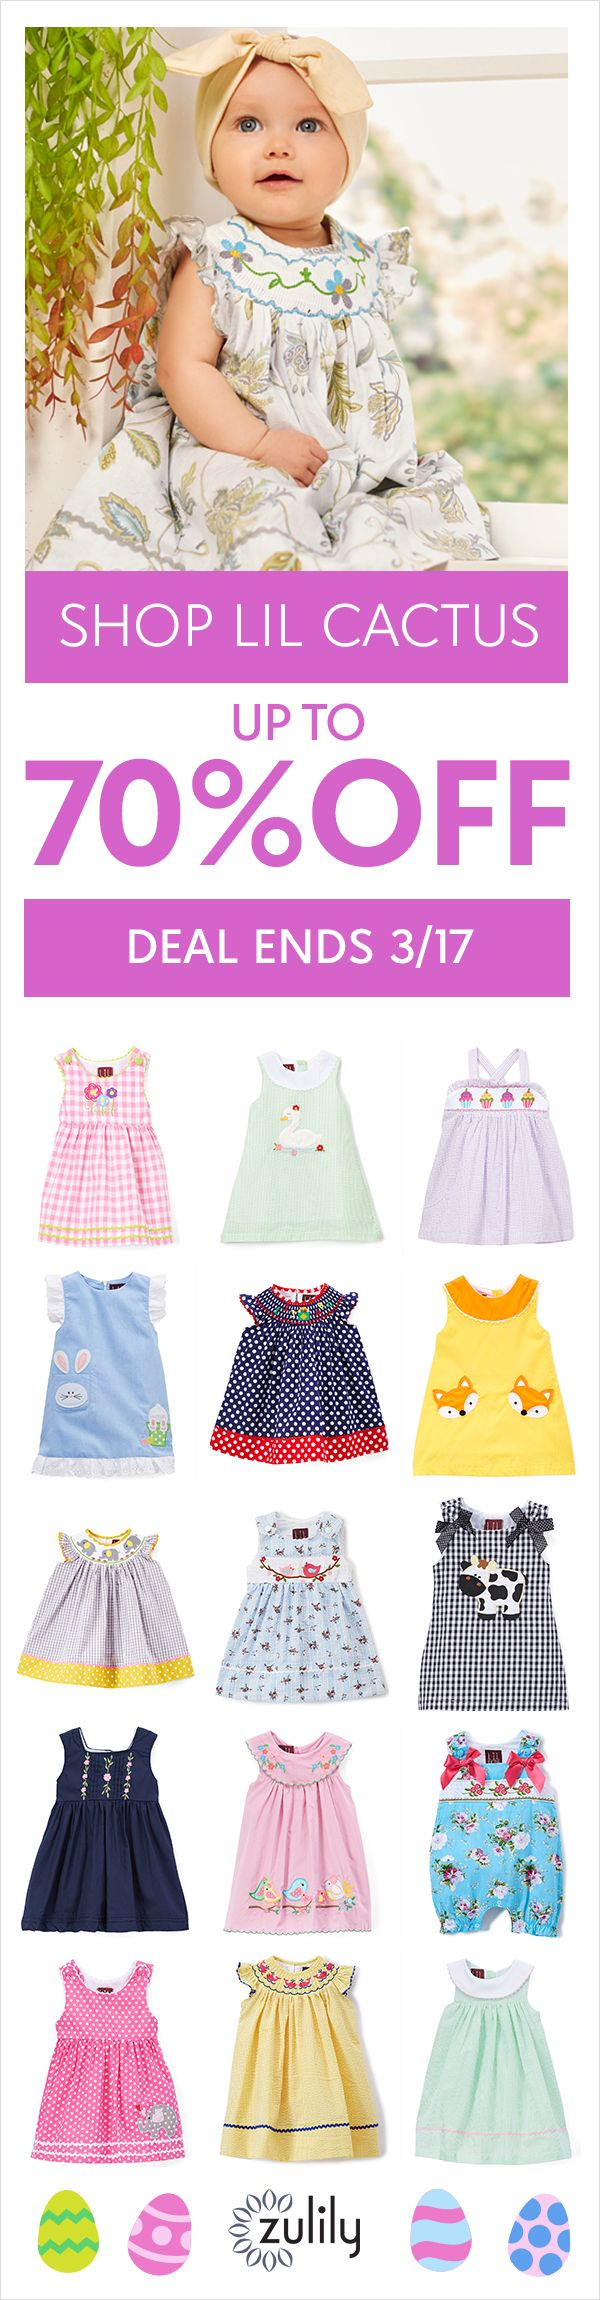 04a140e72 Sign up to shop baby, toddler, and kids Easter clothing up to 70% off. Lil  Cactus creates kids' clothing that renews closets with garden-inspired  beauty, ...